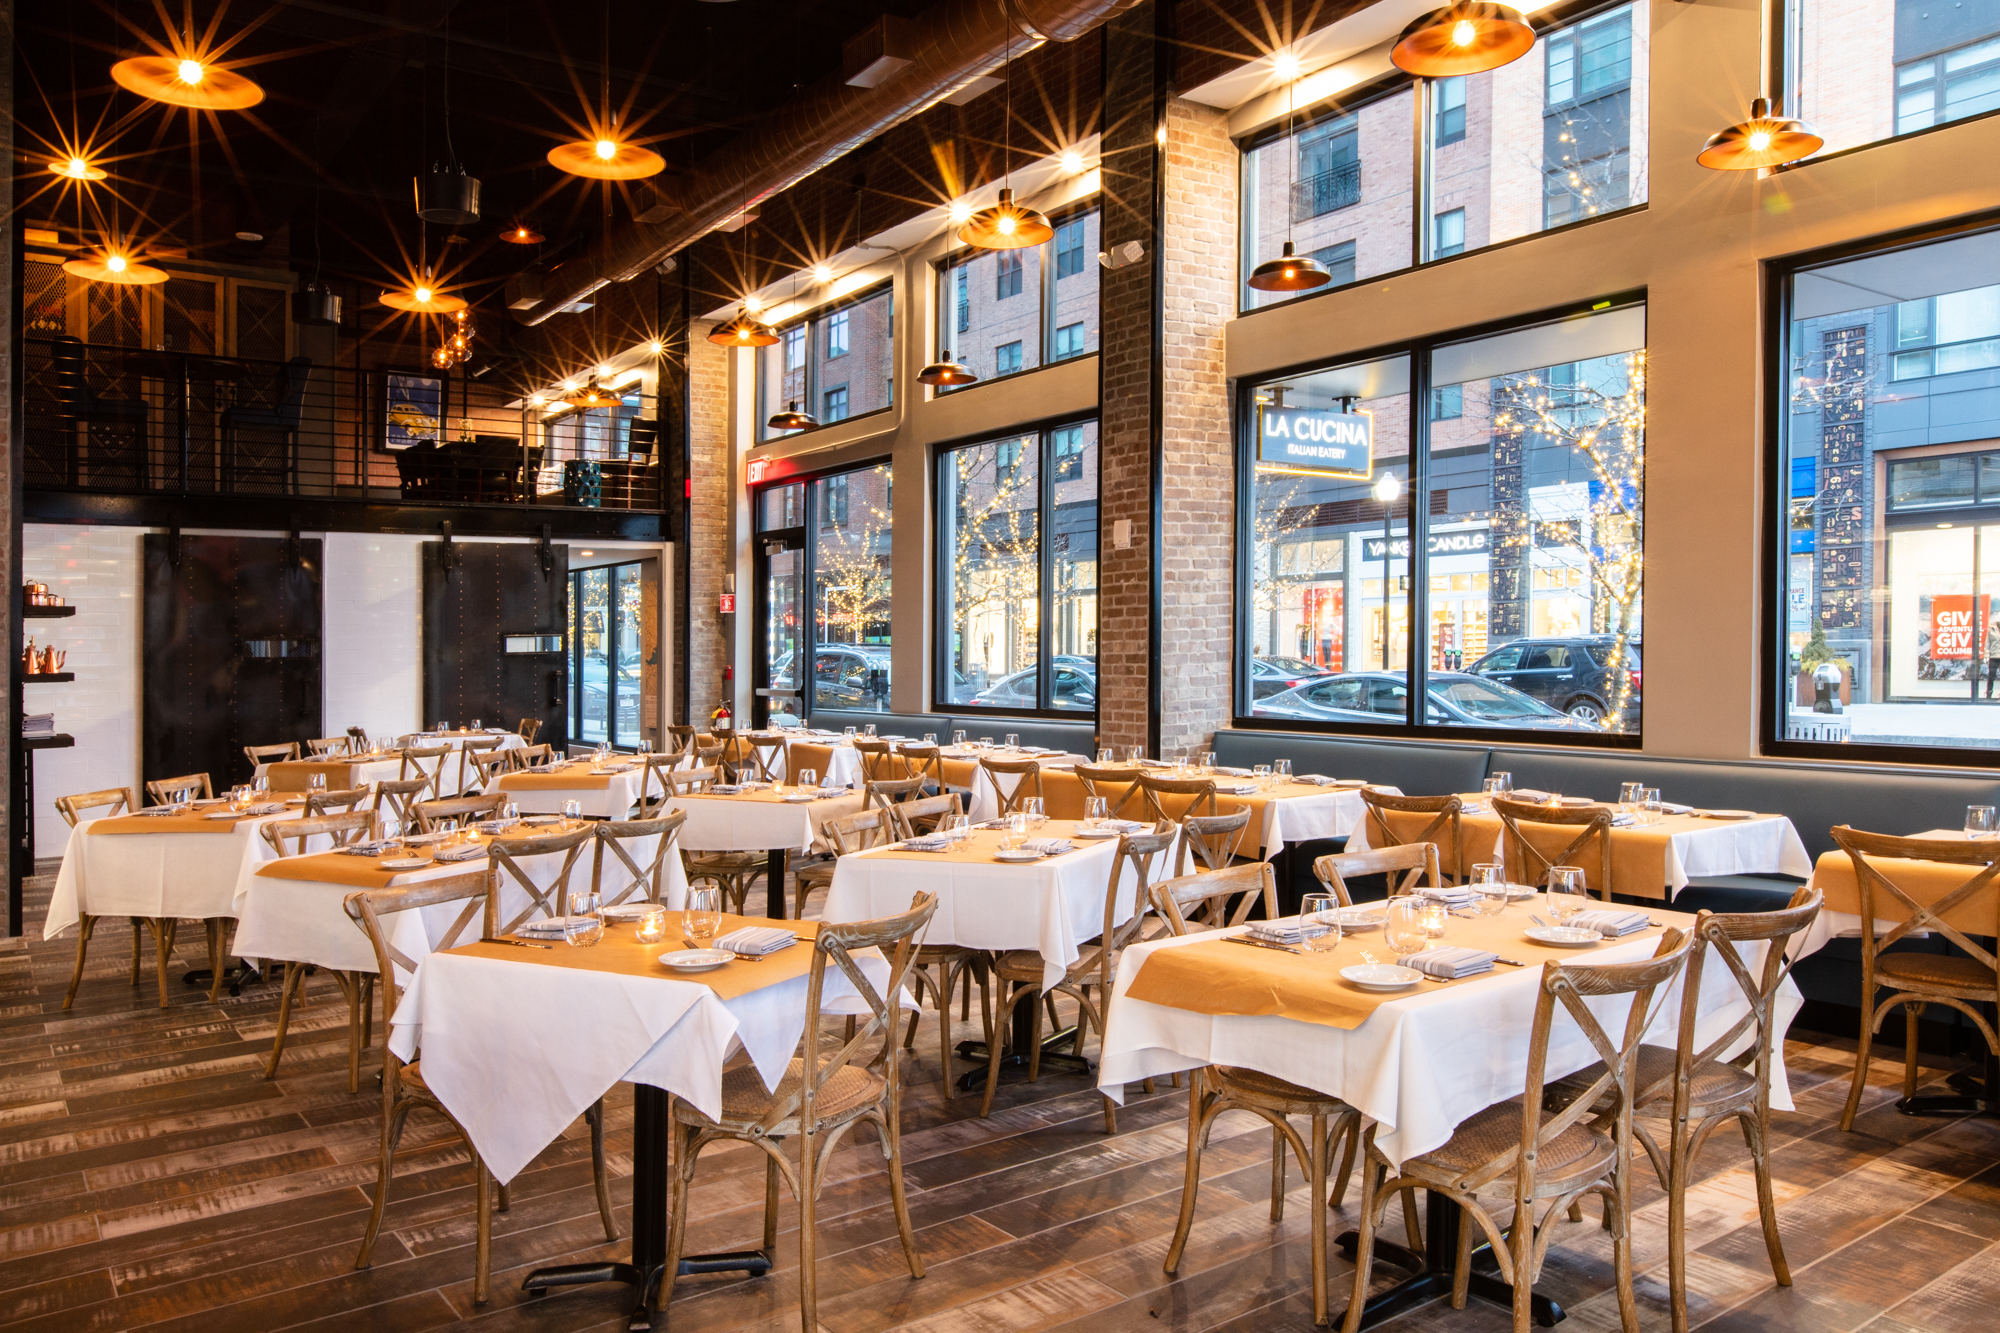 La Cucina Somerville Nj Boston S New Restaurant Openings Boston The Infatuation